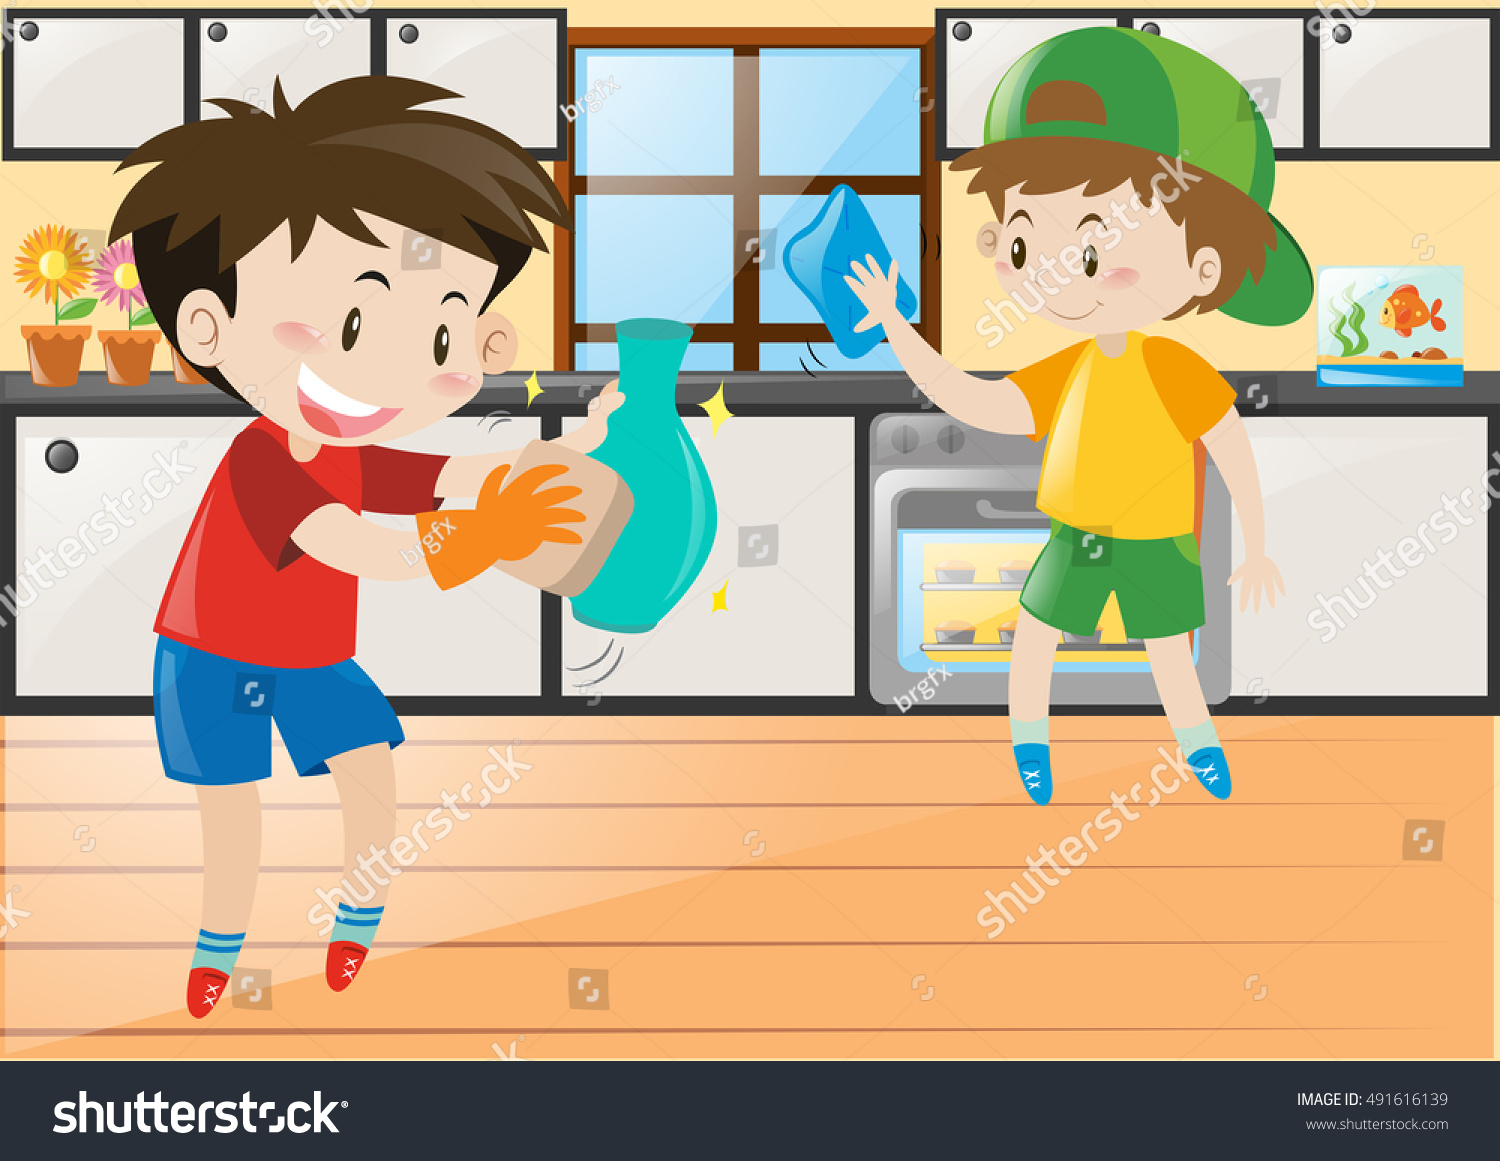 Play kitchen clip art - Two Boys Cleaning In The Kitchen Illustration